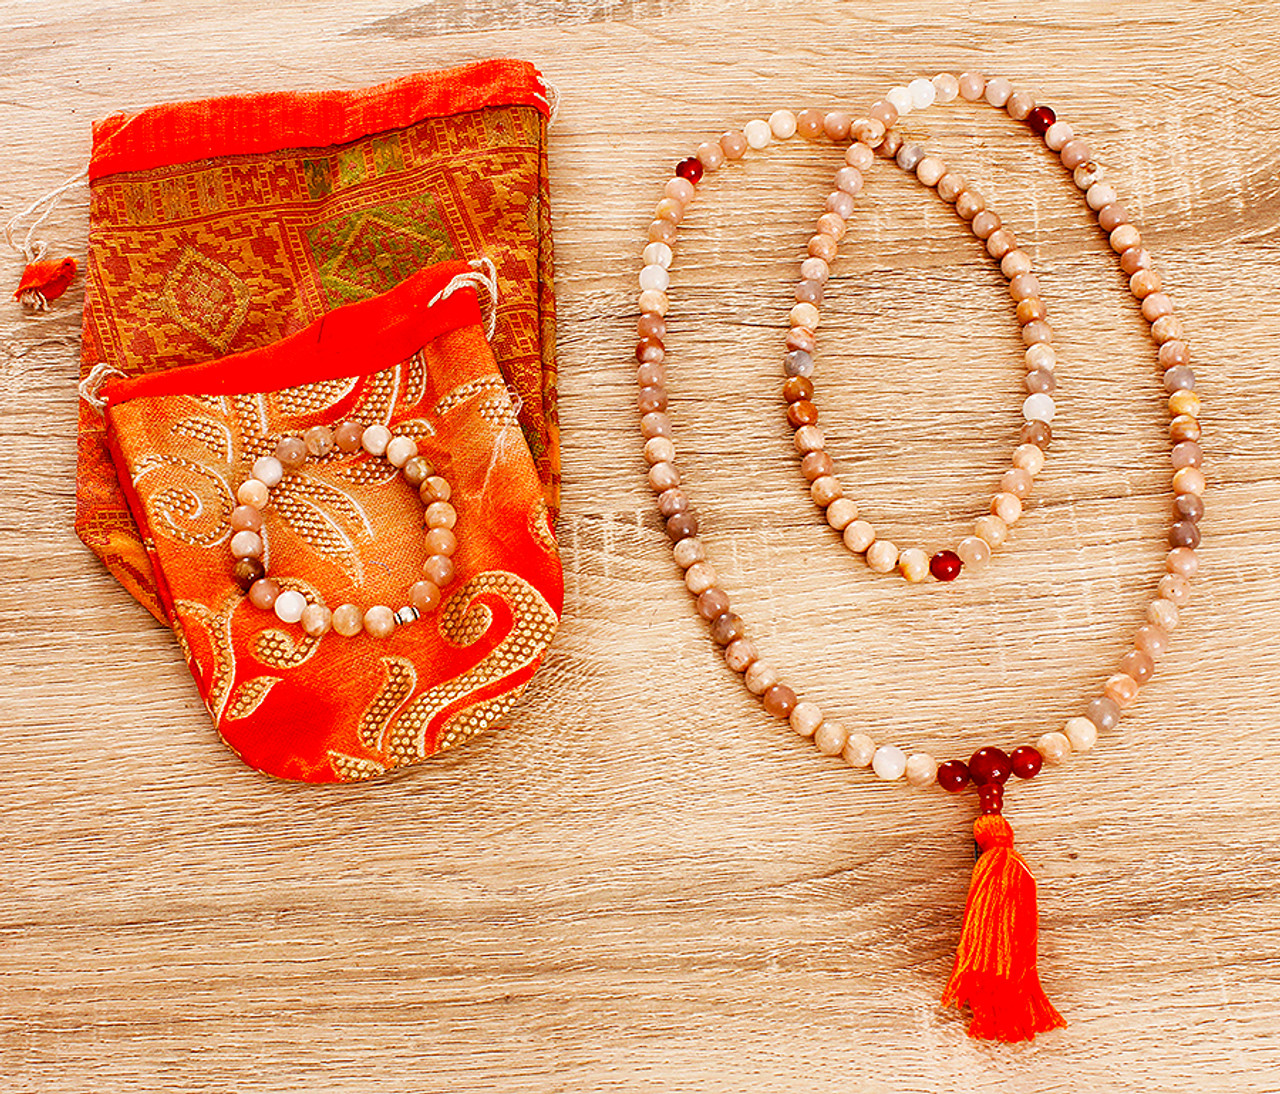 Sunstone crystal mala